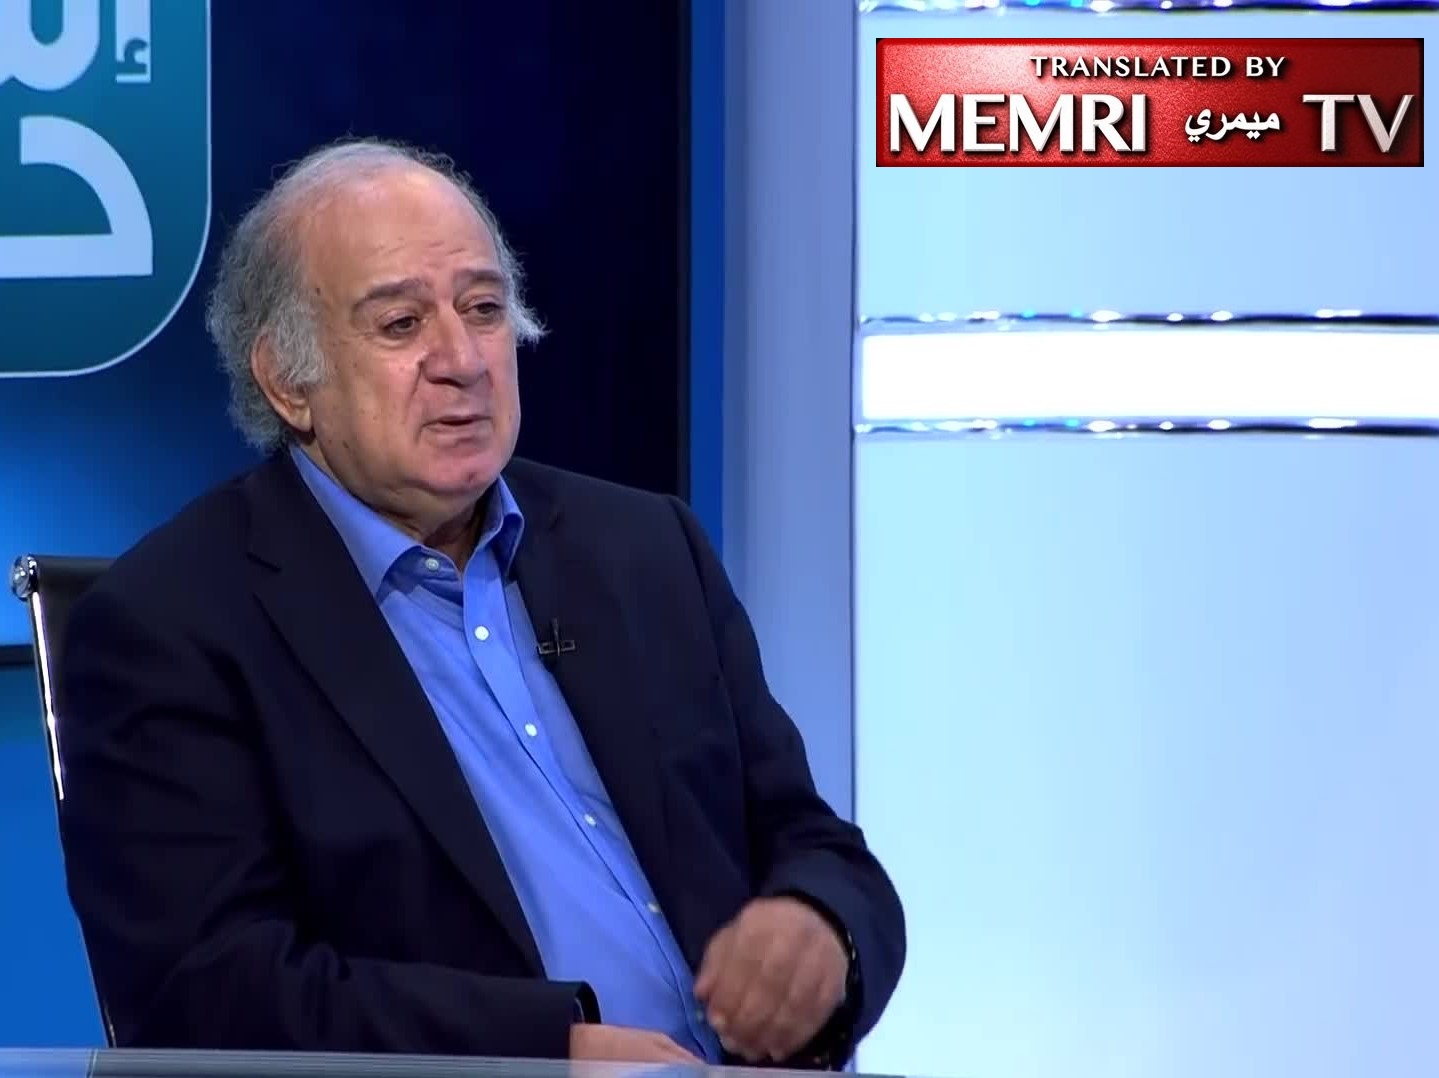 Egyptian Author Dr. Tarek Heggy: World War against Islam Is Certain If Traditional Islam Is Left in the Hands of Religious Institutions; Unchecked Immigration Is Dangerous to Europe